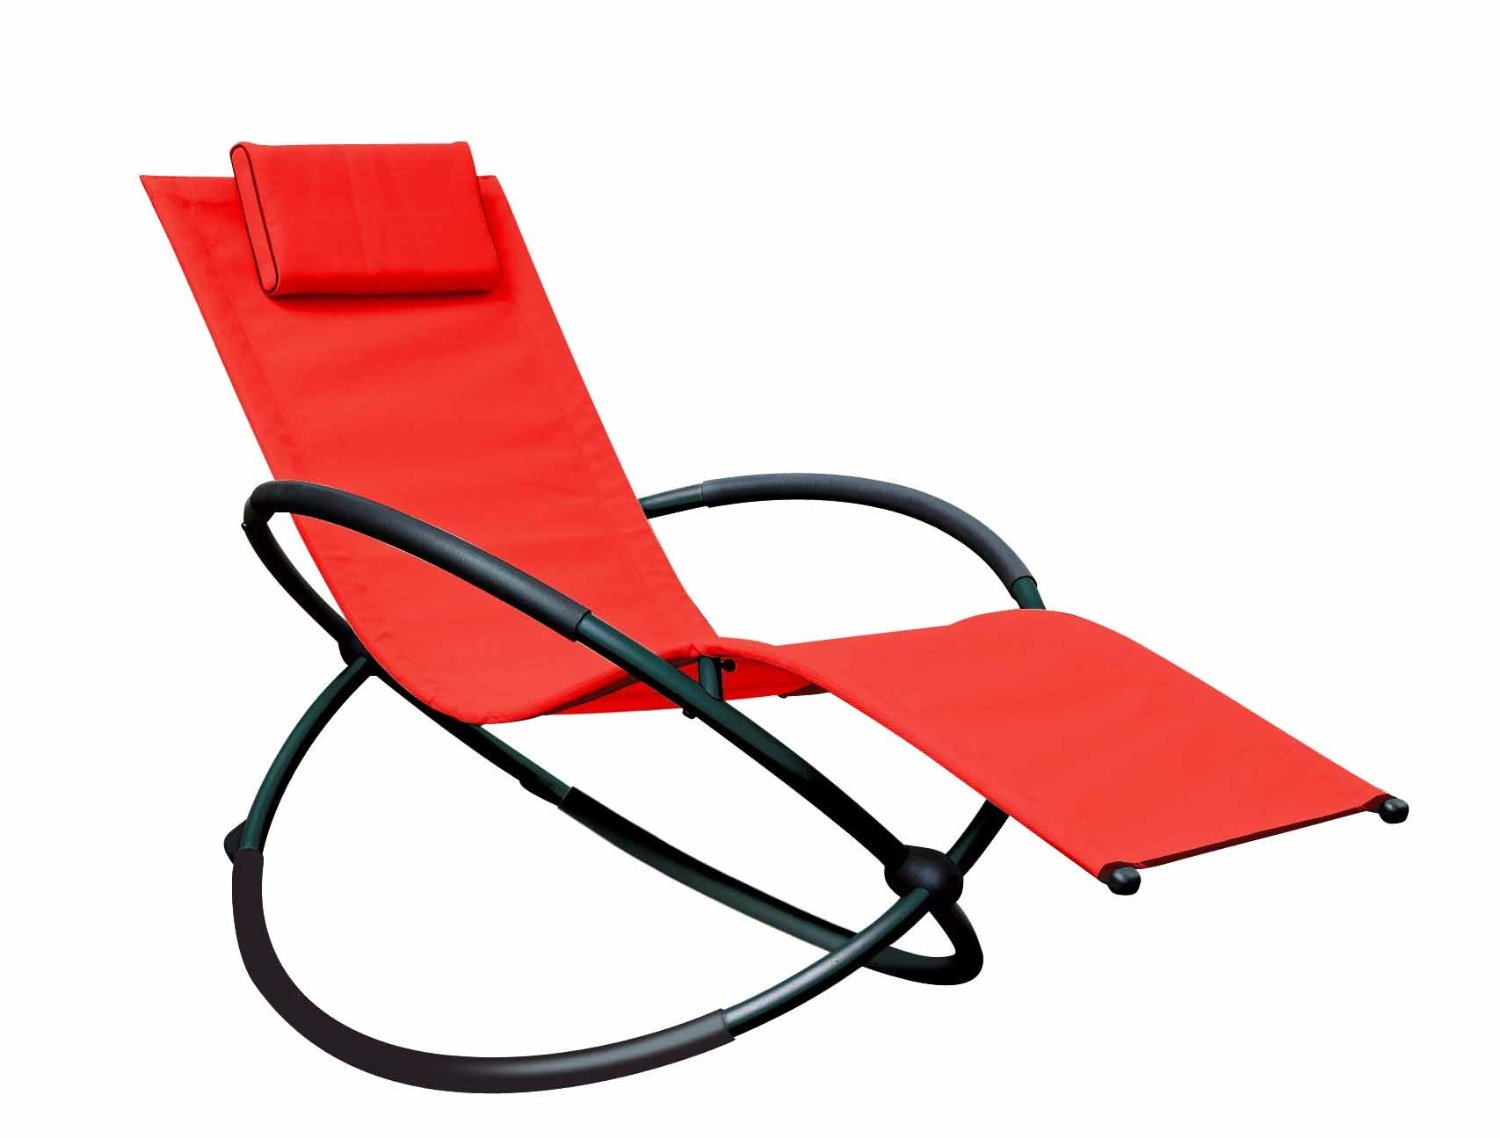 Zero Gravity Orbital Patio Lounger